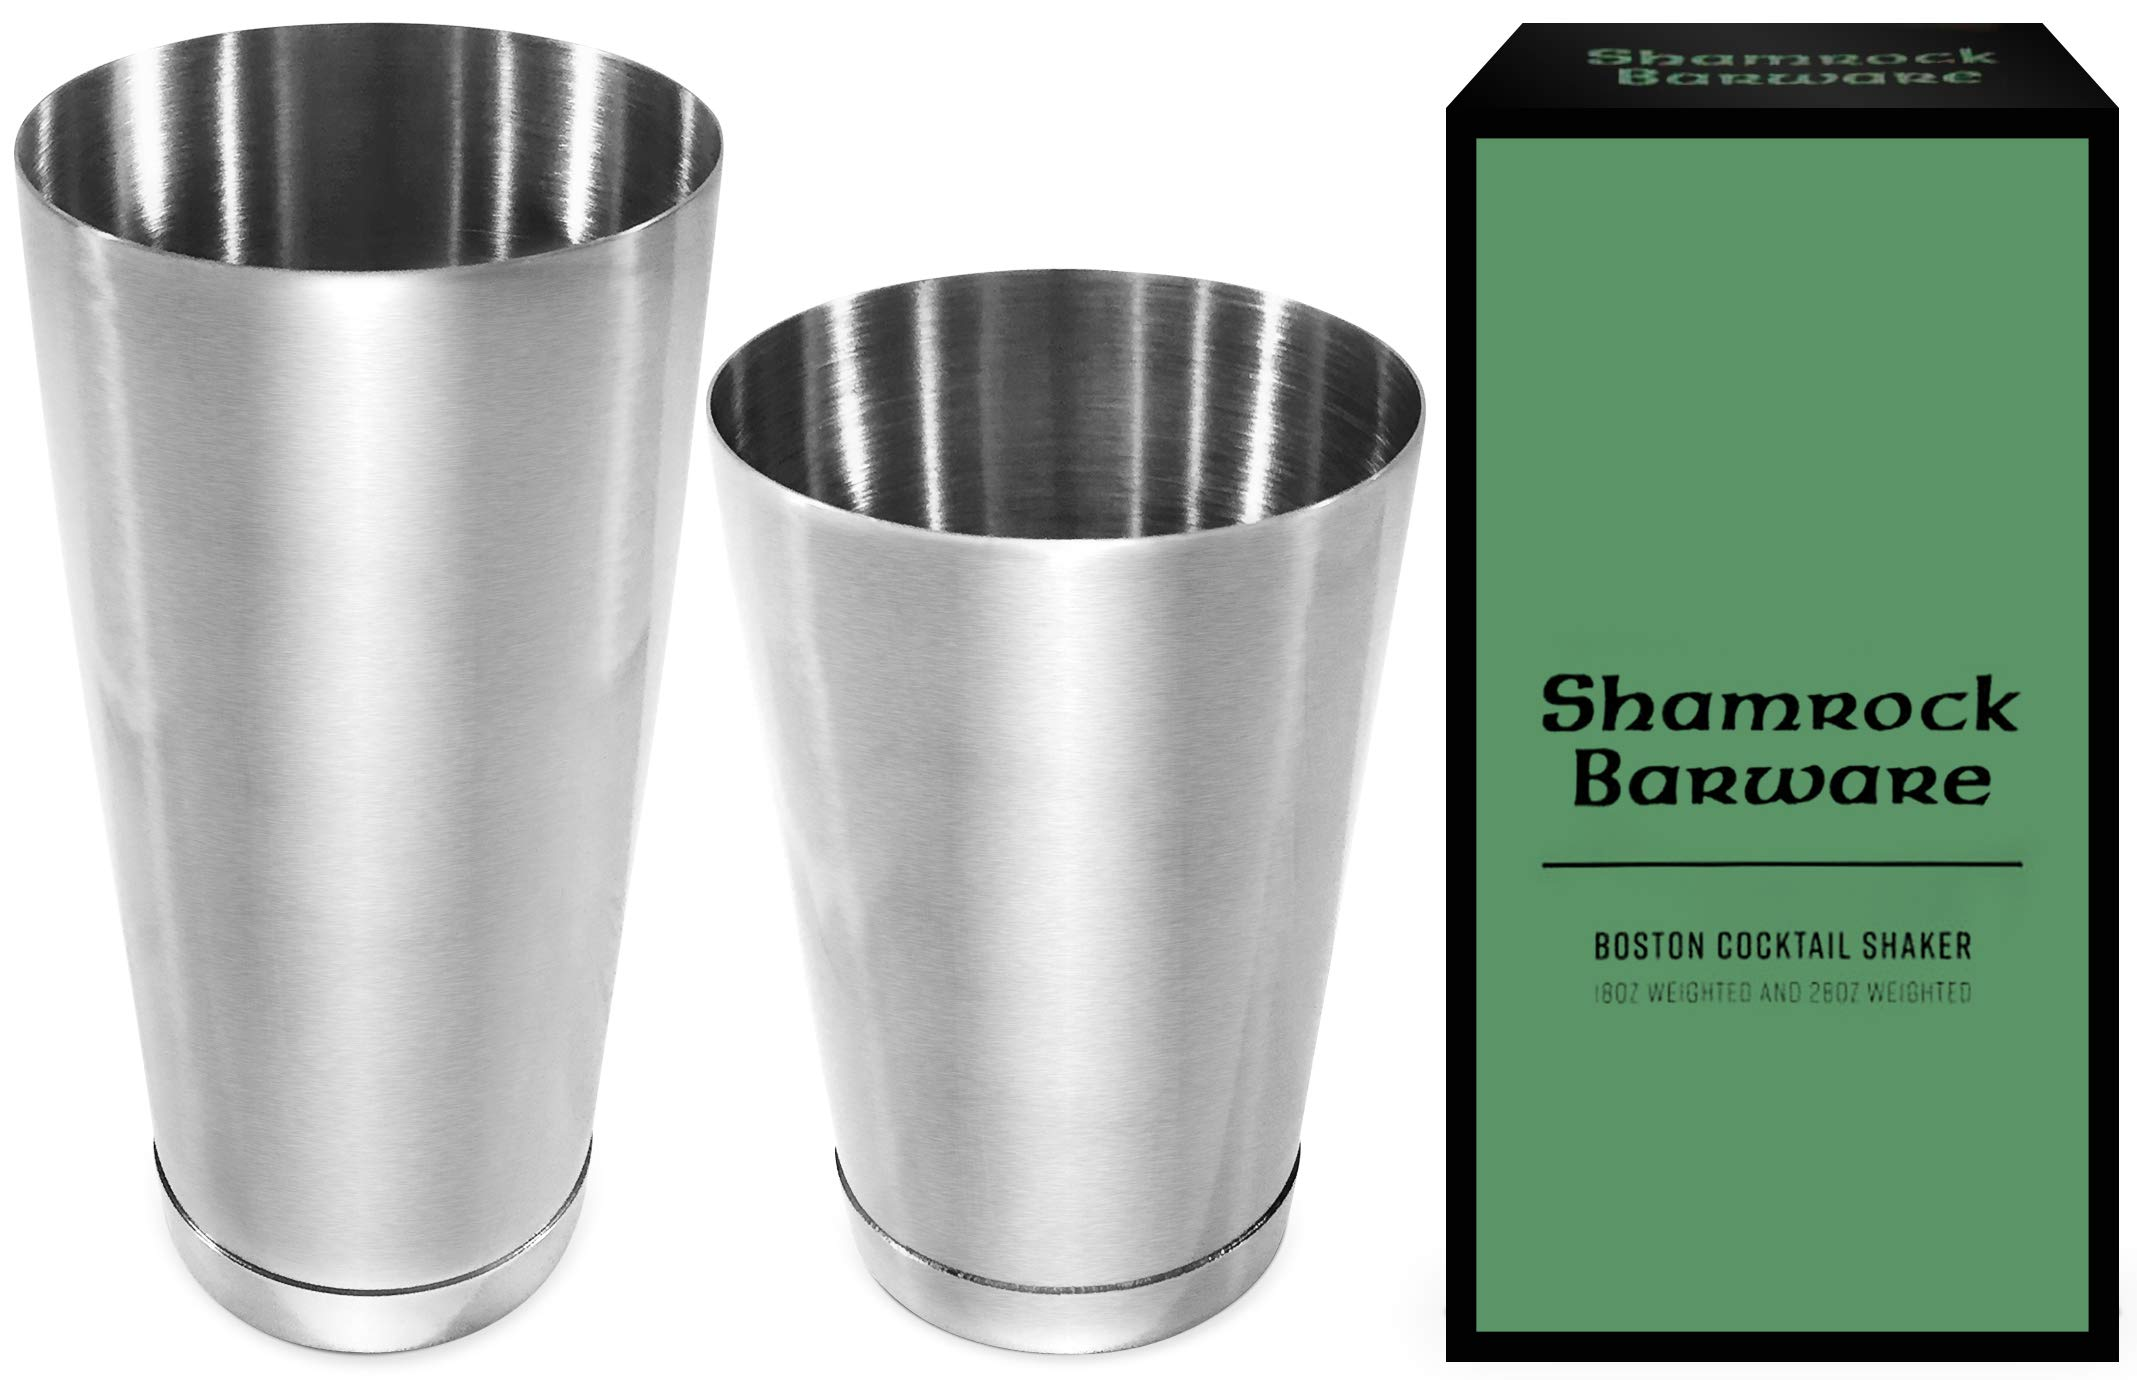 Easy Open Stainless Steel Boston Shaker. Professional Bartender Cocktail Shaker Set: 18 & 28oz Tins are Dual Weighted & Fully Welded onto Bases. Perfect for Beginner